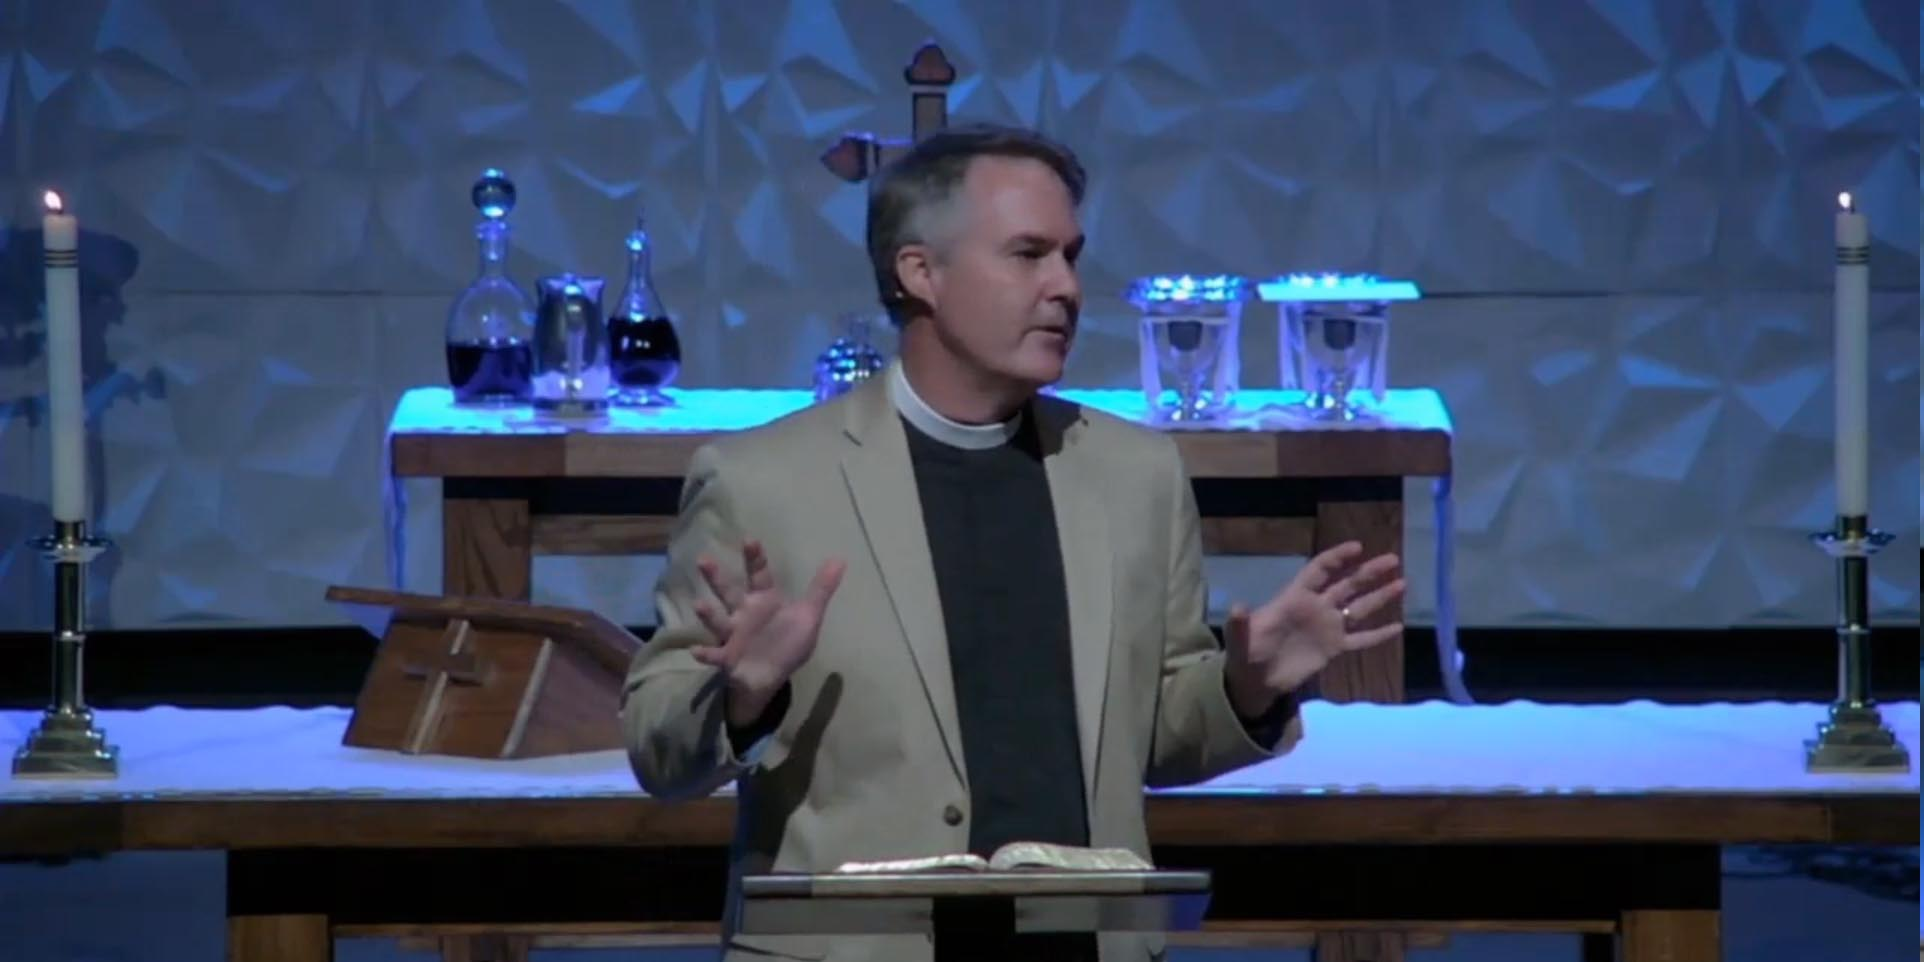 Do You Love Me? - Sermon Video by Charlie Holt